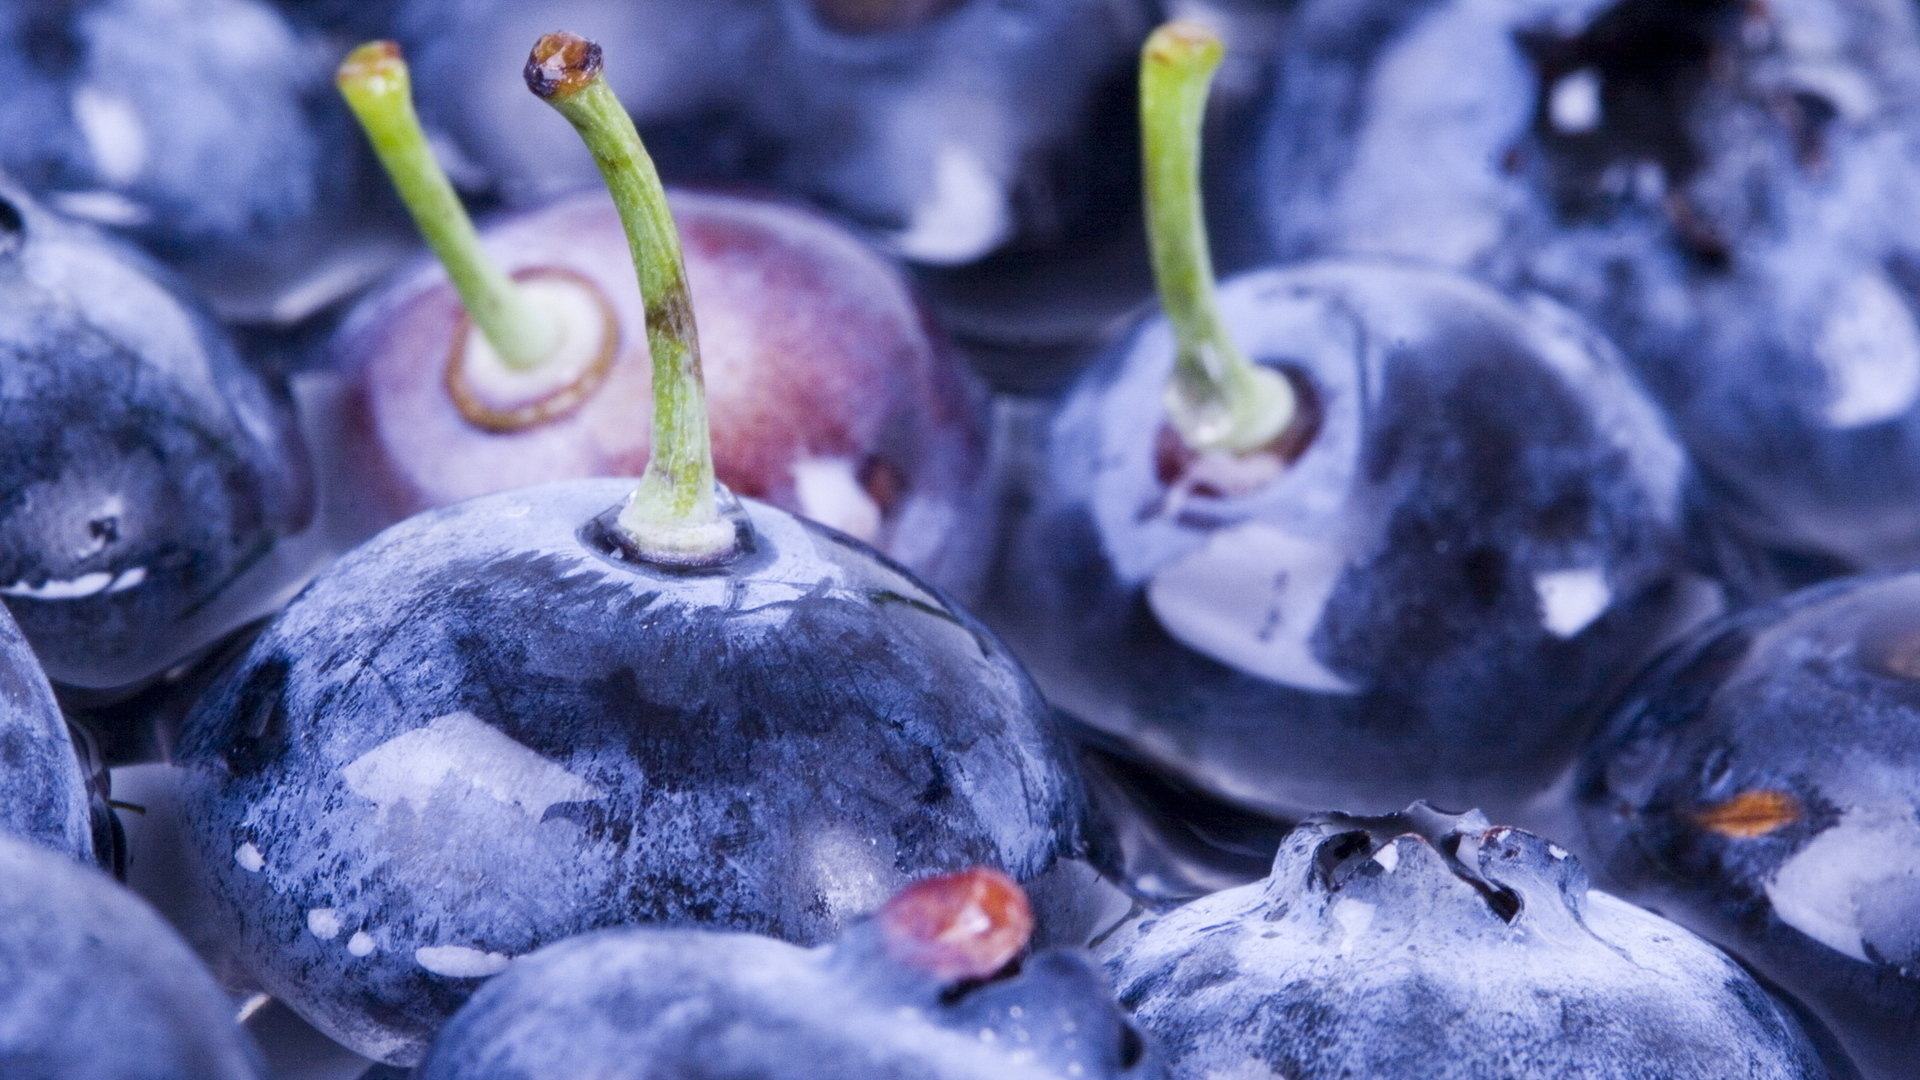 Download full hd 1080p Blueberry computer wallpaper ID:69057 for free